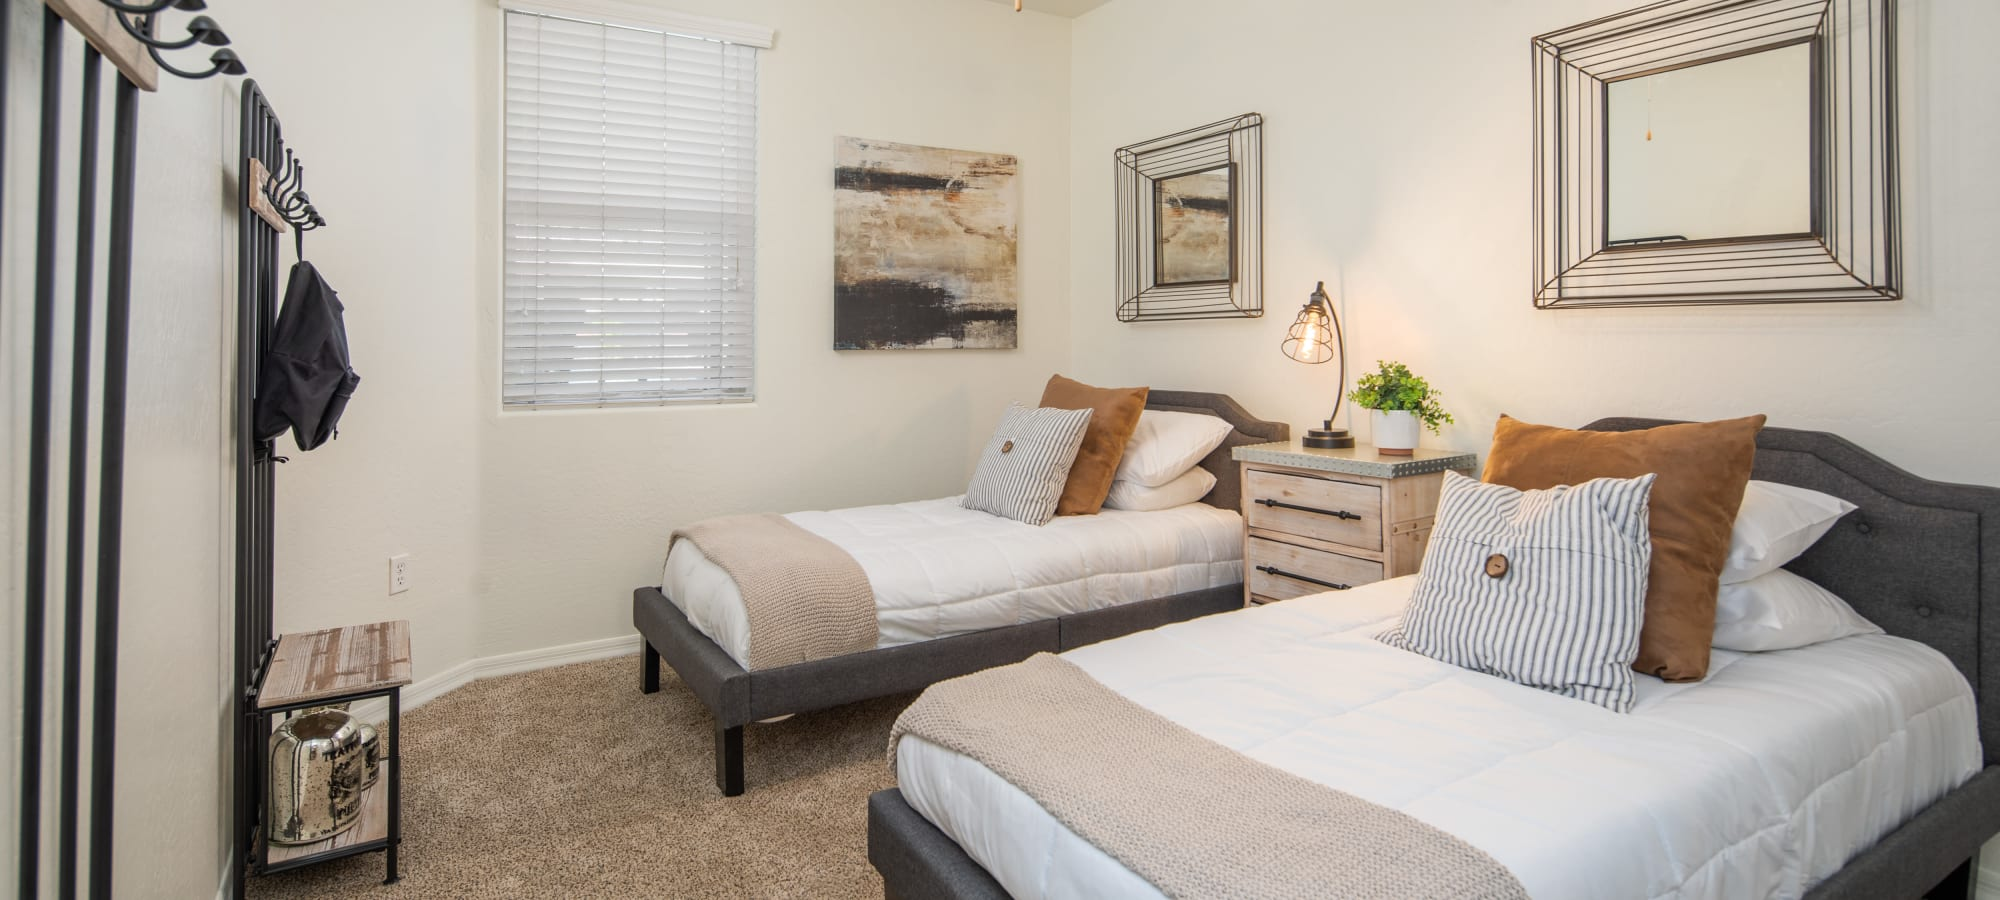 Two beds in a bedroom at The Fleetwood in Tempe, Arizona